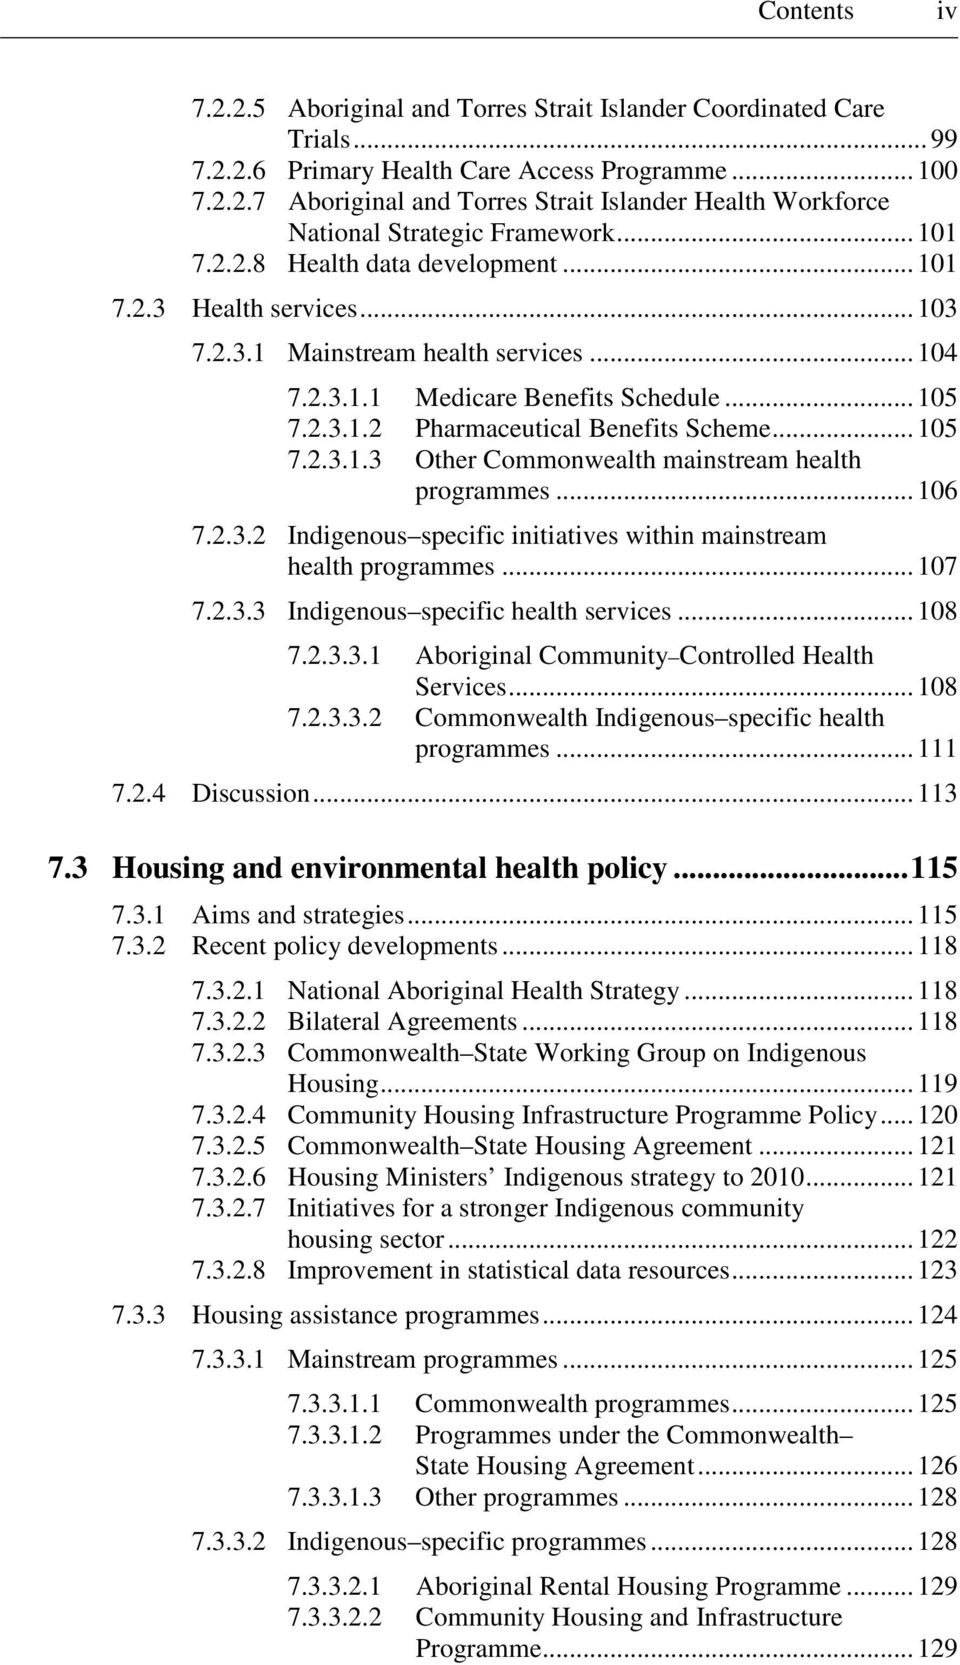 .. 105 7.2.3.1.3 Other Commonwealth mainstream health programmes... 106 7.2.3.2 Indigenous specific initiatives within mainstream health programmes... 107 7.2.3.3 Indigenous specific health services.